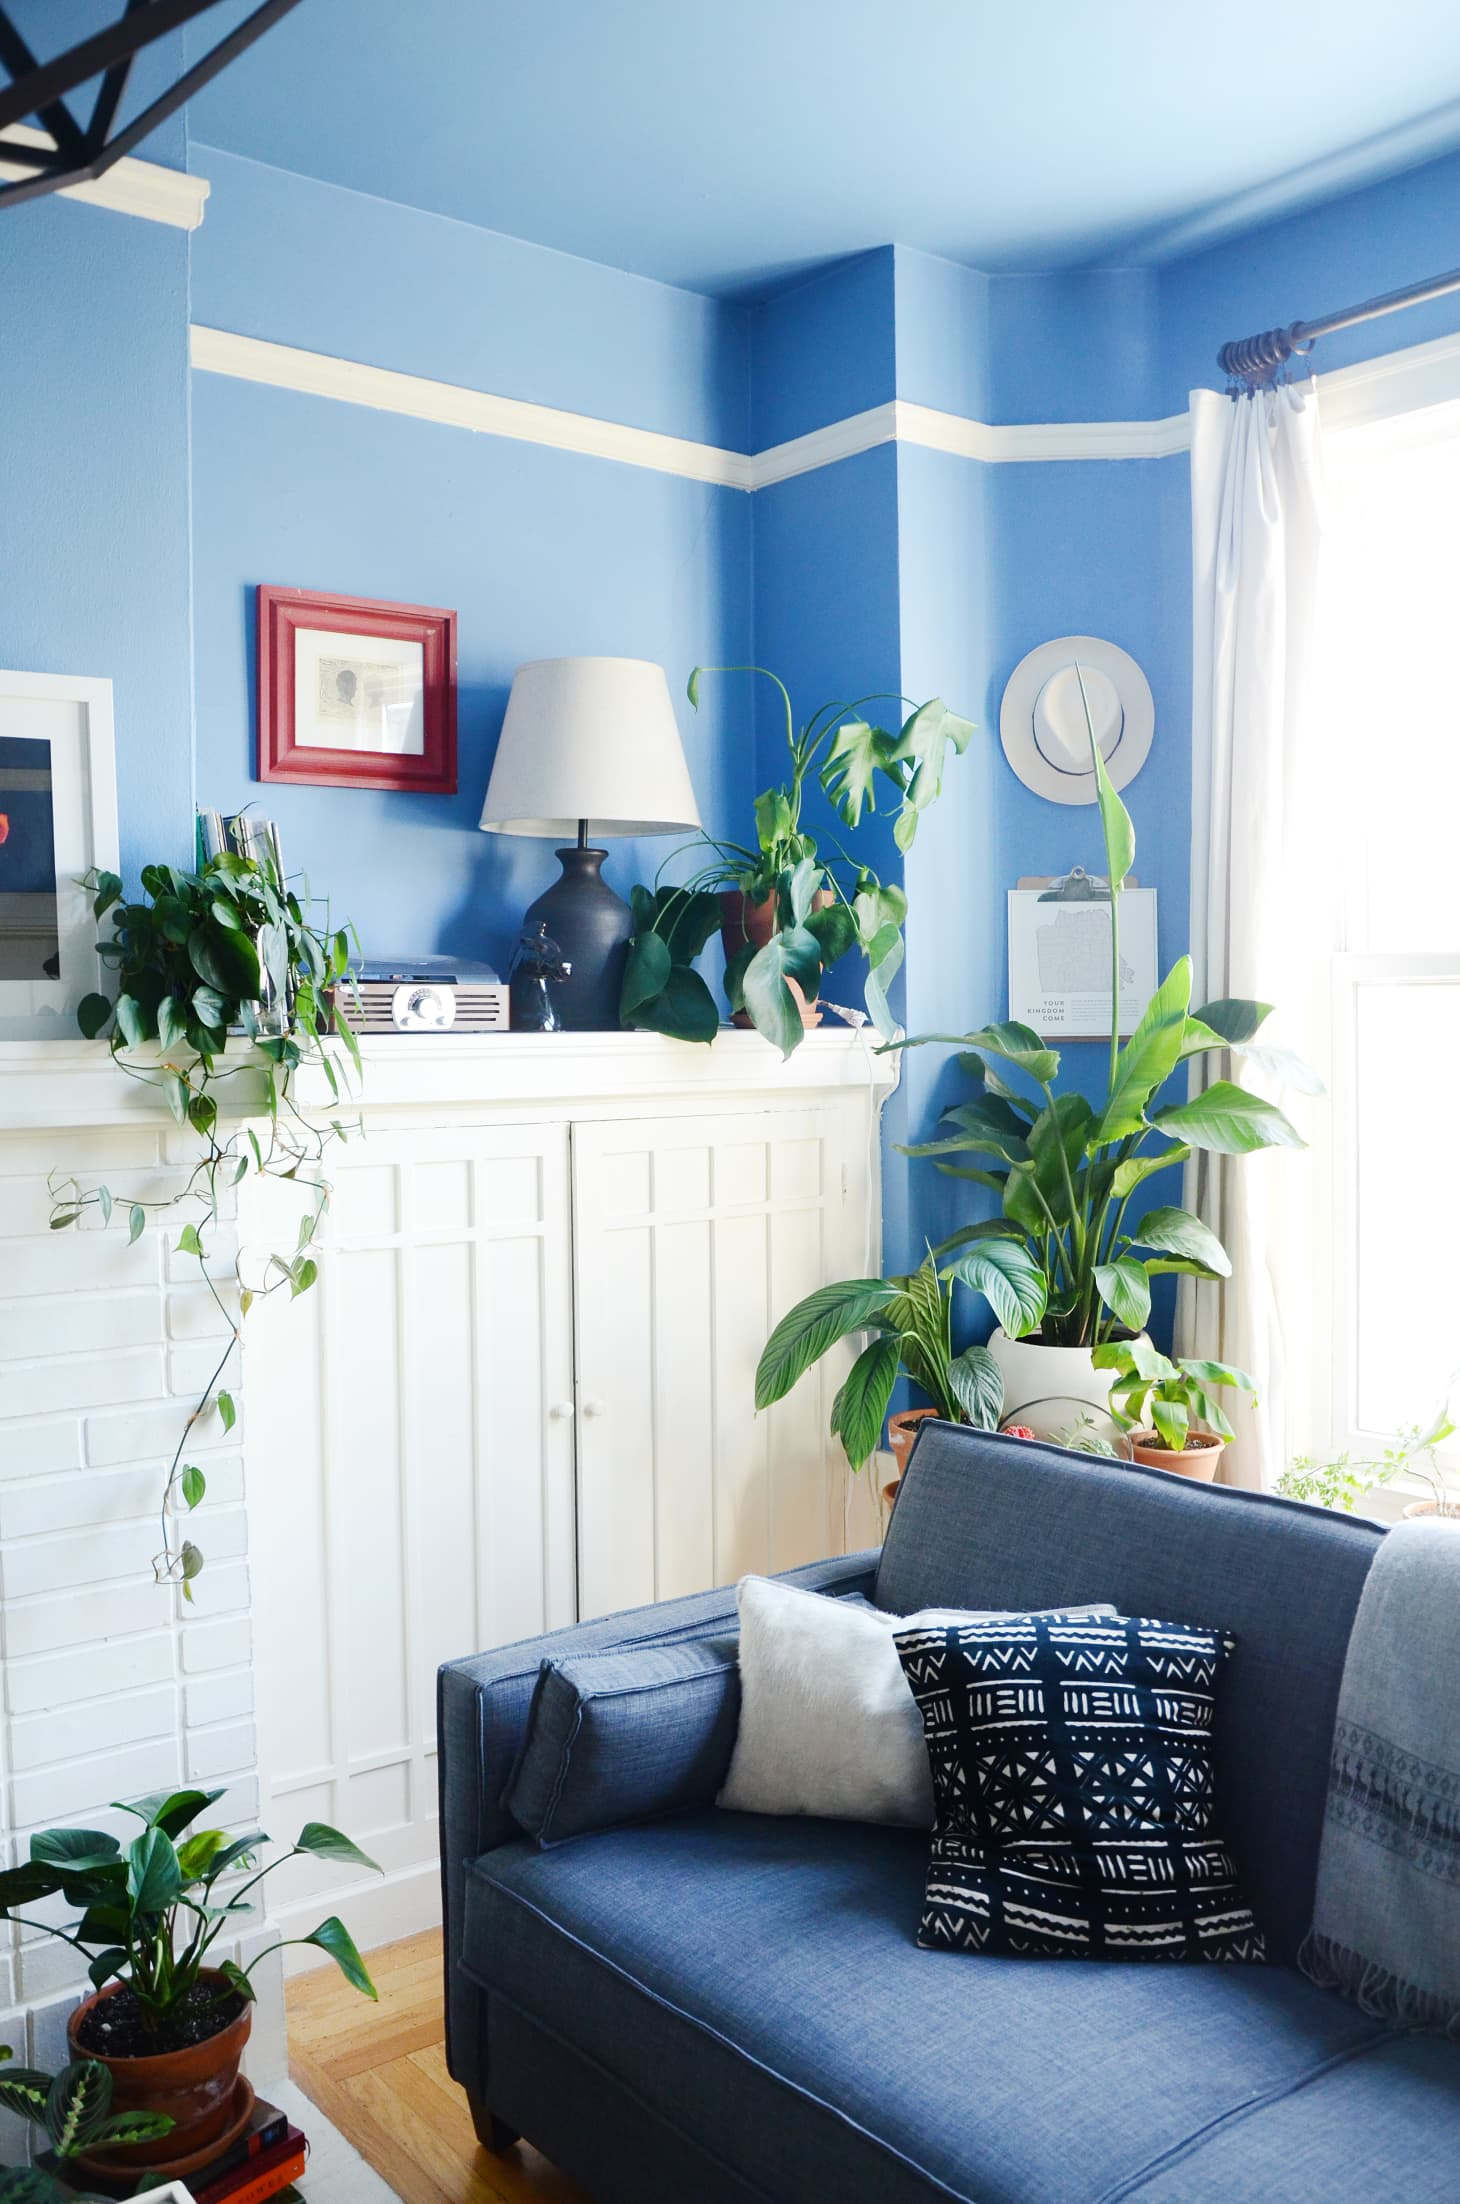 The Best Affordable Upgrades for Your Living Room | Apartment Therapy